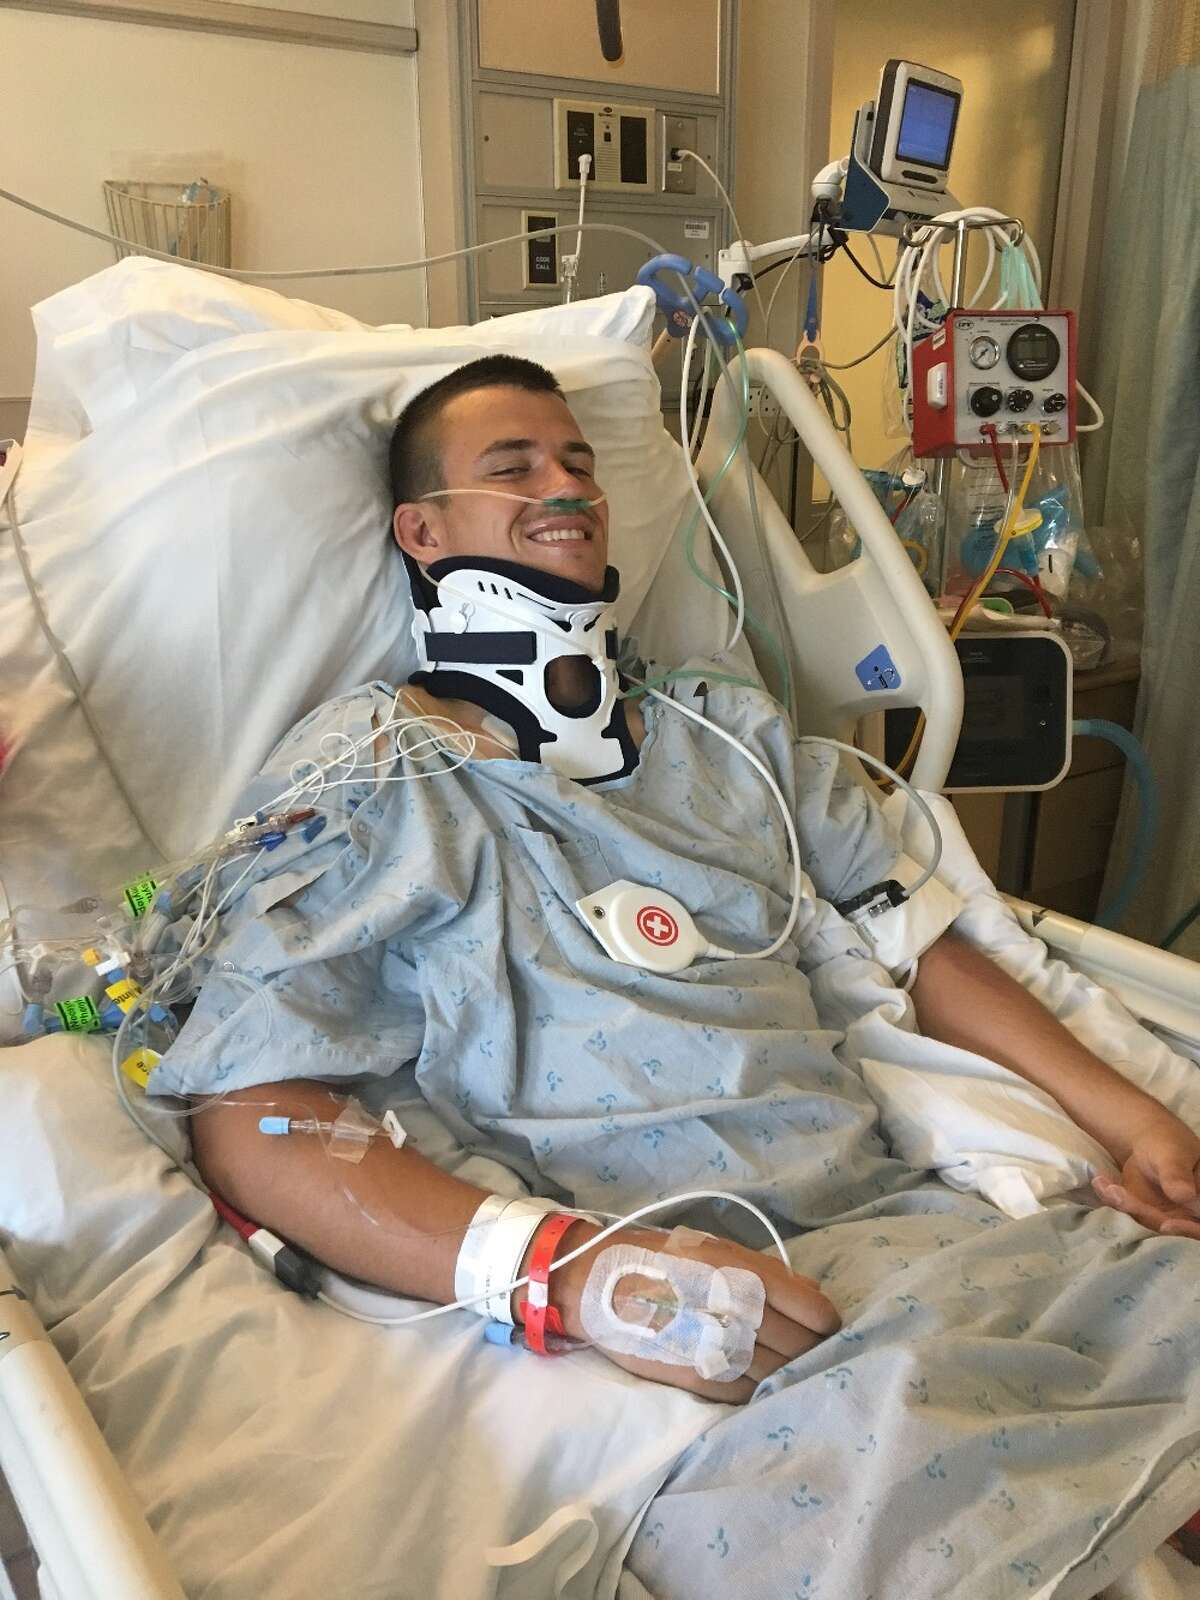 Robert Paylor smiles for the camera after suffering serious injuries during a May 6 rugby game.